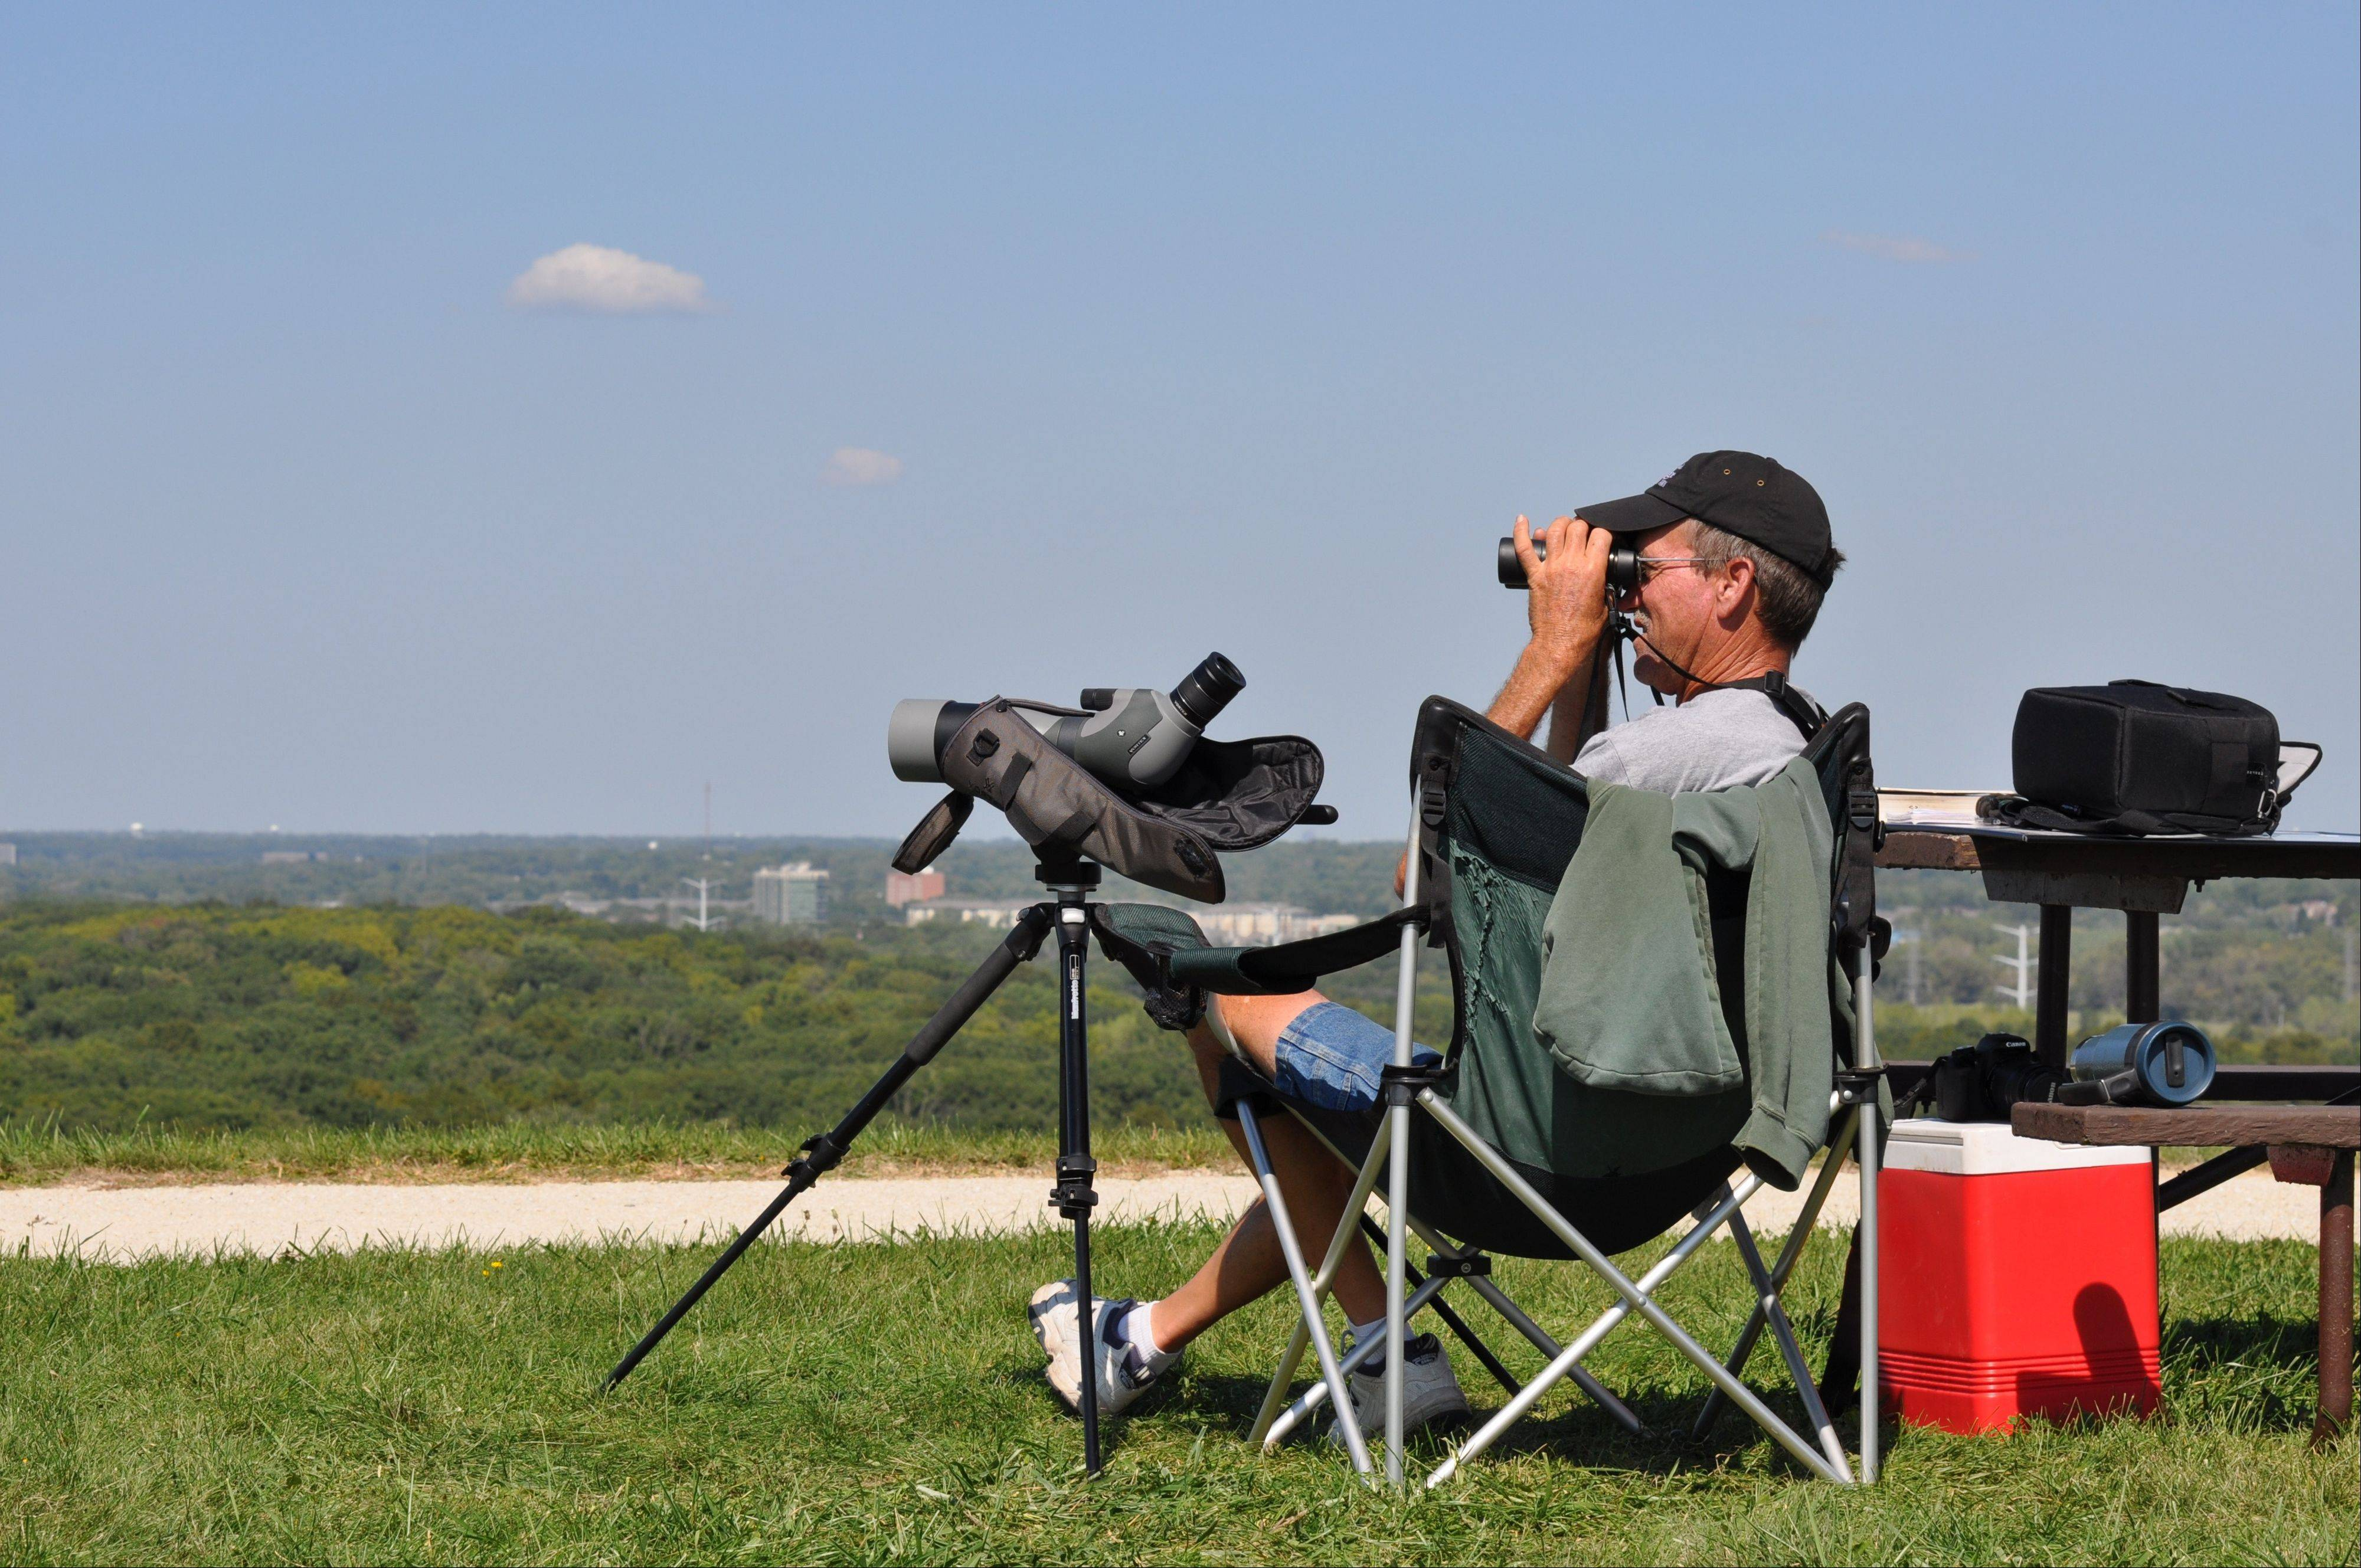 Every day through November, observers at Greene Valley Forest Preserve document the migrating hawks, eagles, falcons and vultures.